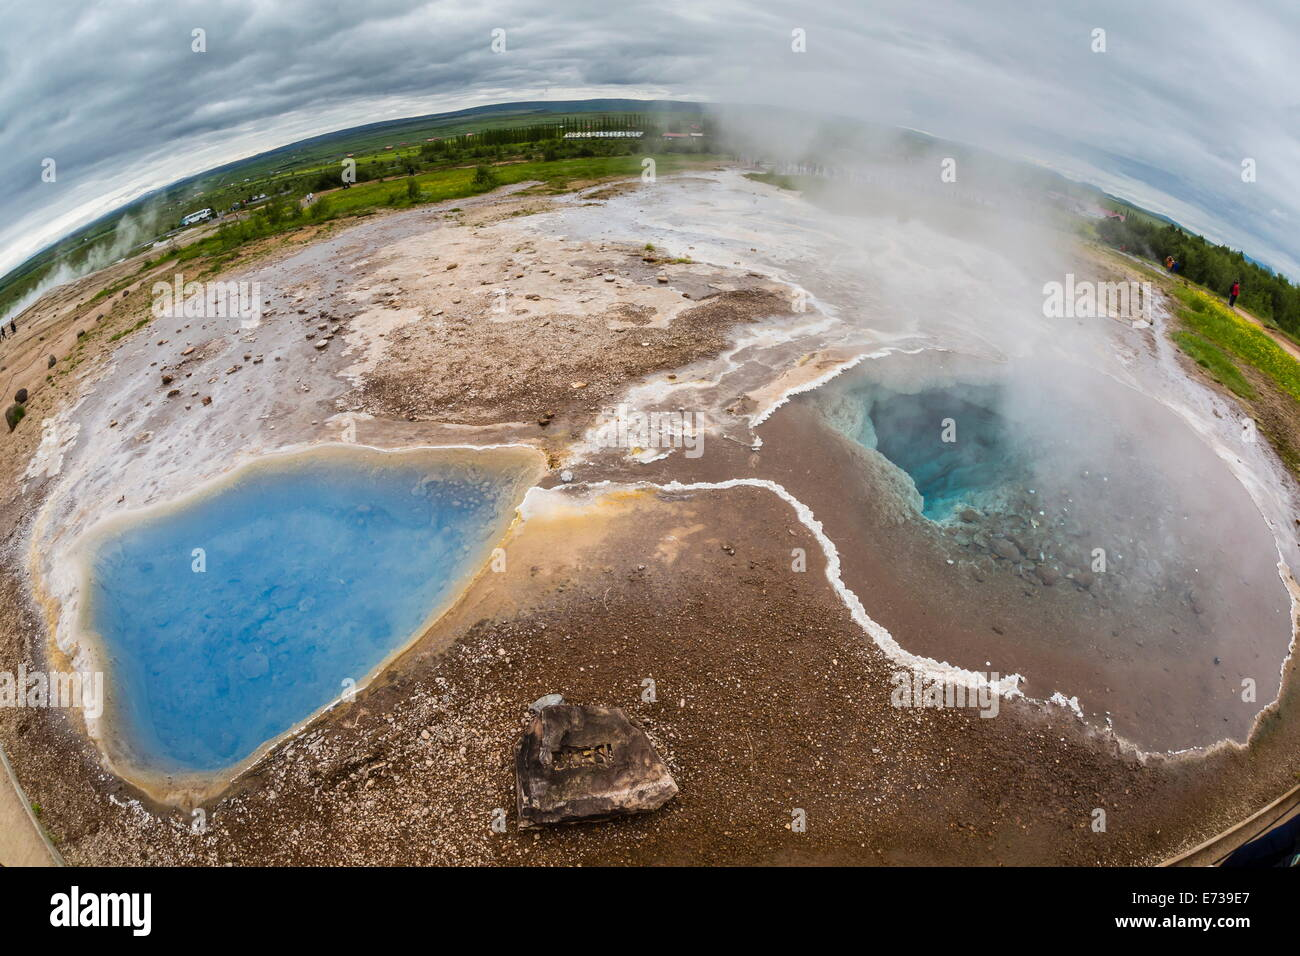 View of hot springs in the Haukadalur valley on the slopes of Laugarfjall hill, Iceland, Polar Regions Stock Photo